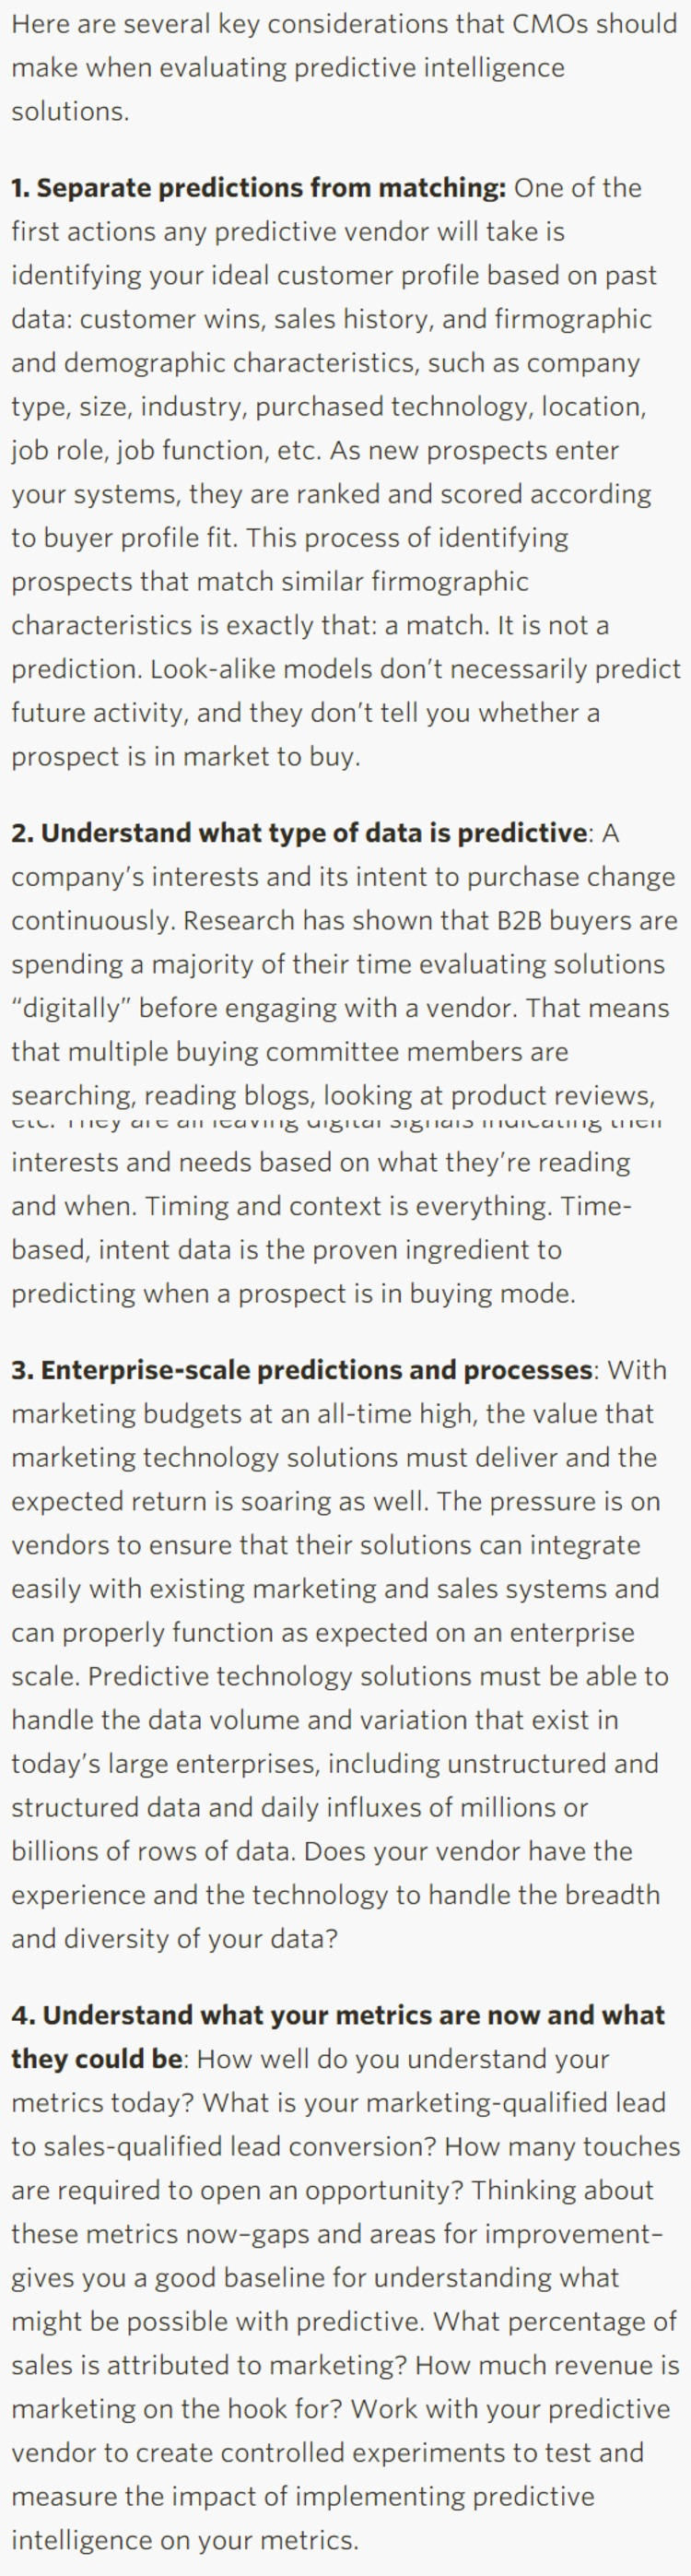 How To Pick A Predictive Intelligence Solution - CMO.com | The Marketing Technology Alert | Scoop.it